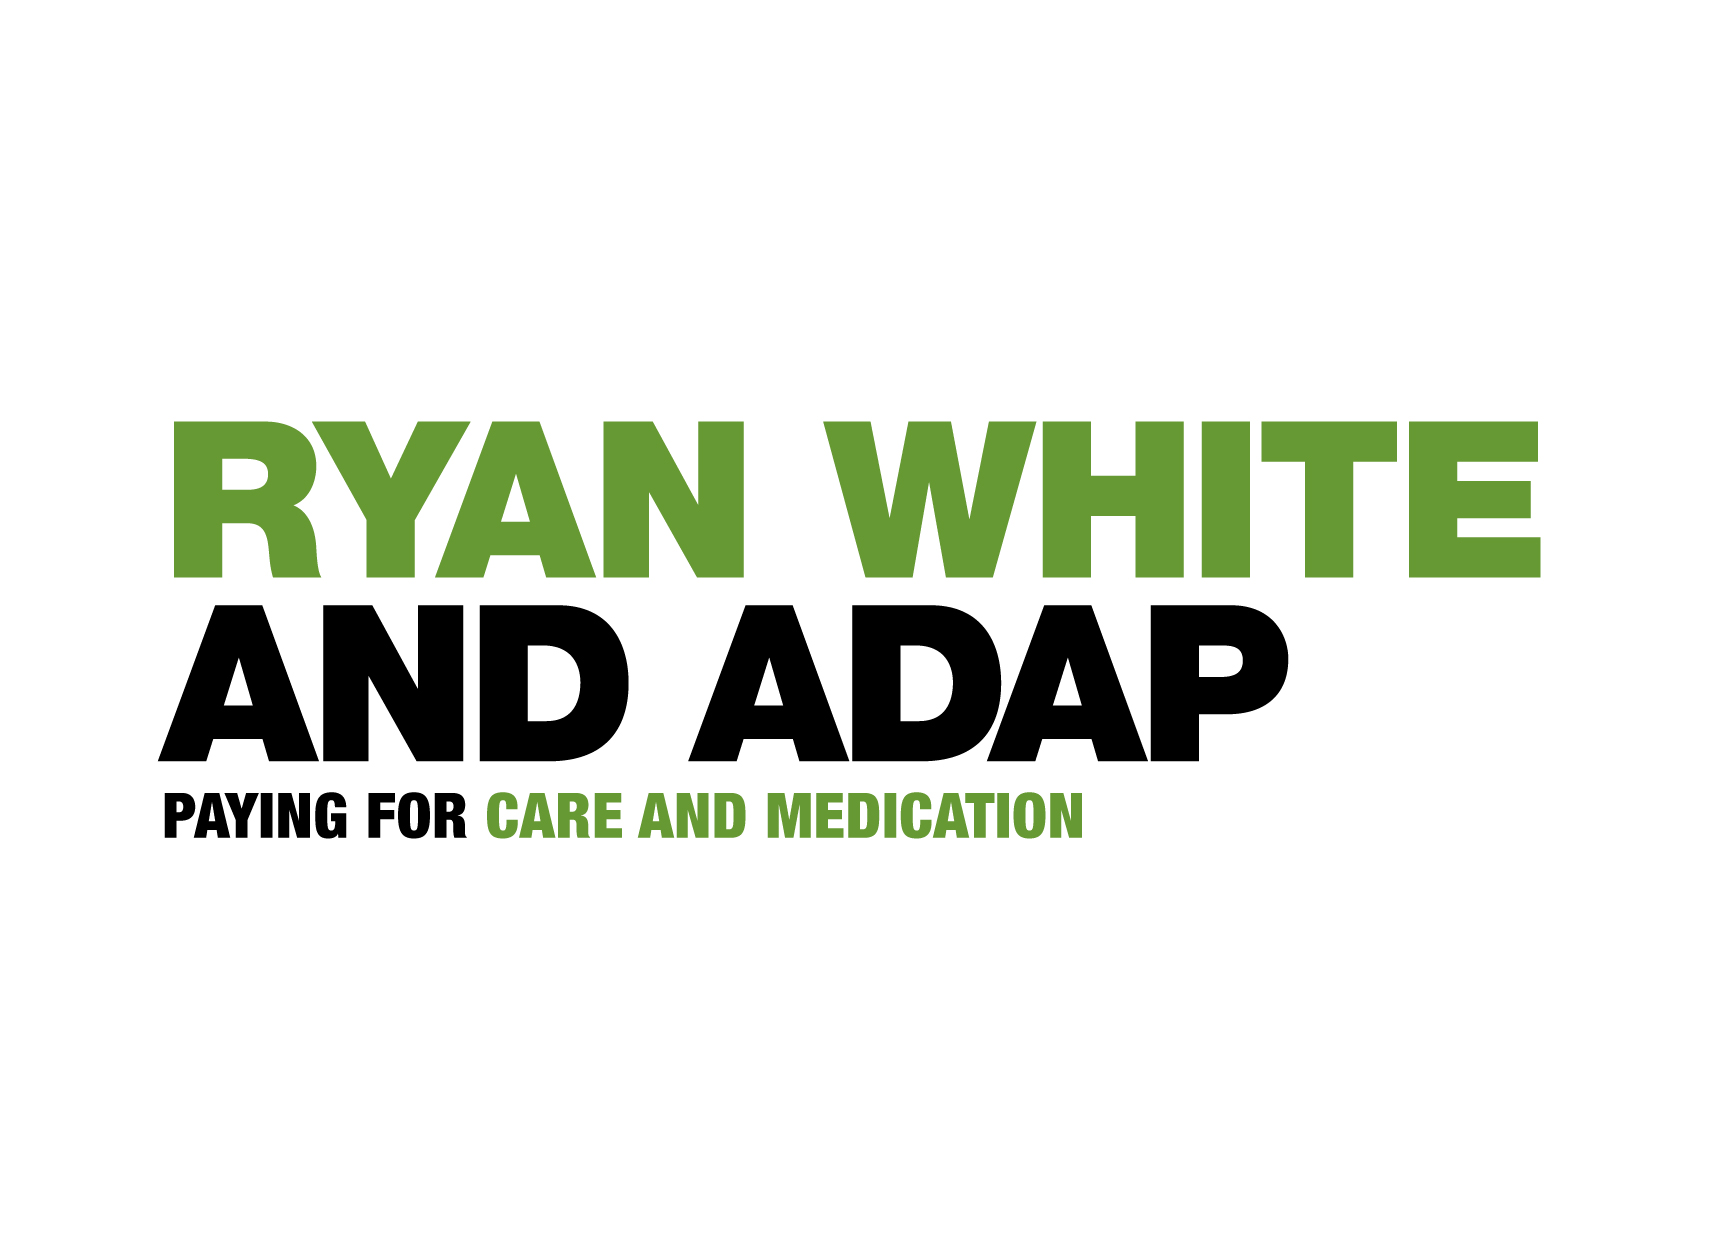 Ryan White and ADAP Paying for care and medication stacked graphic written in green and black